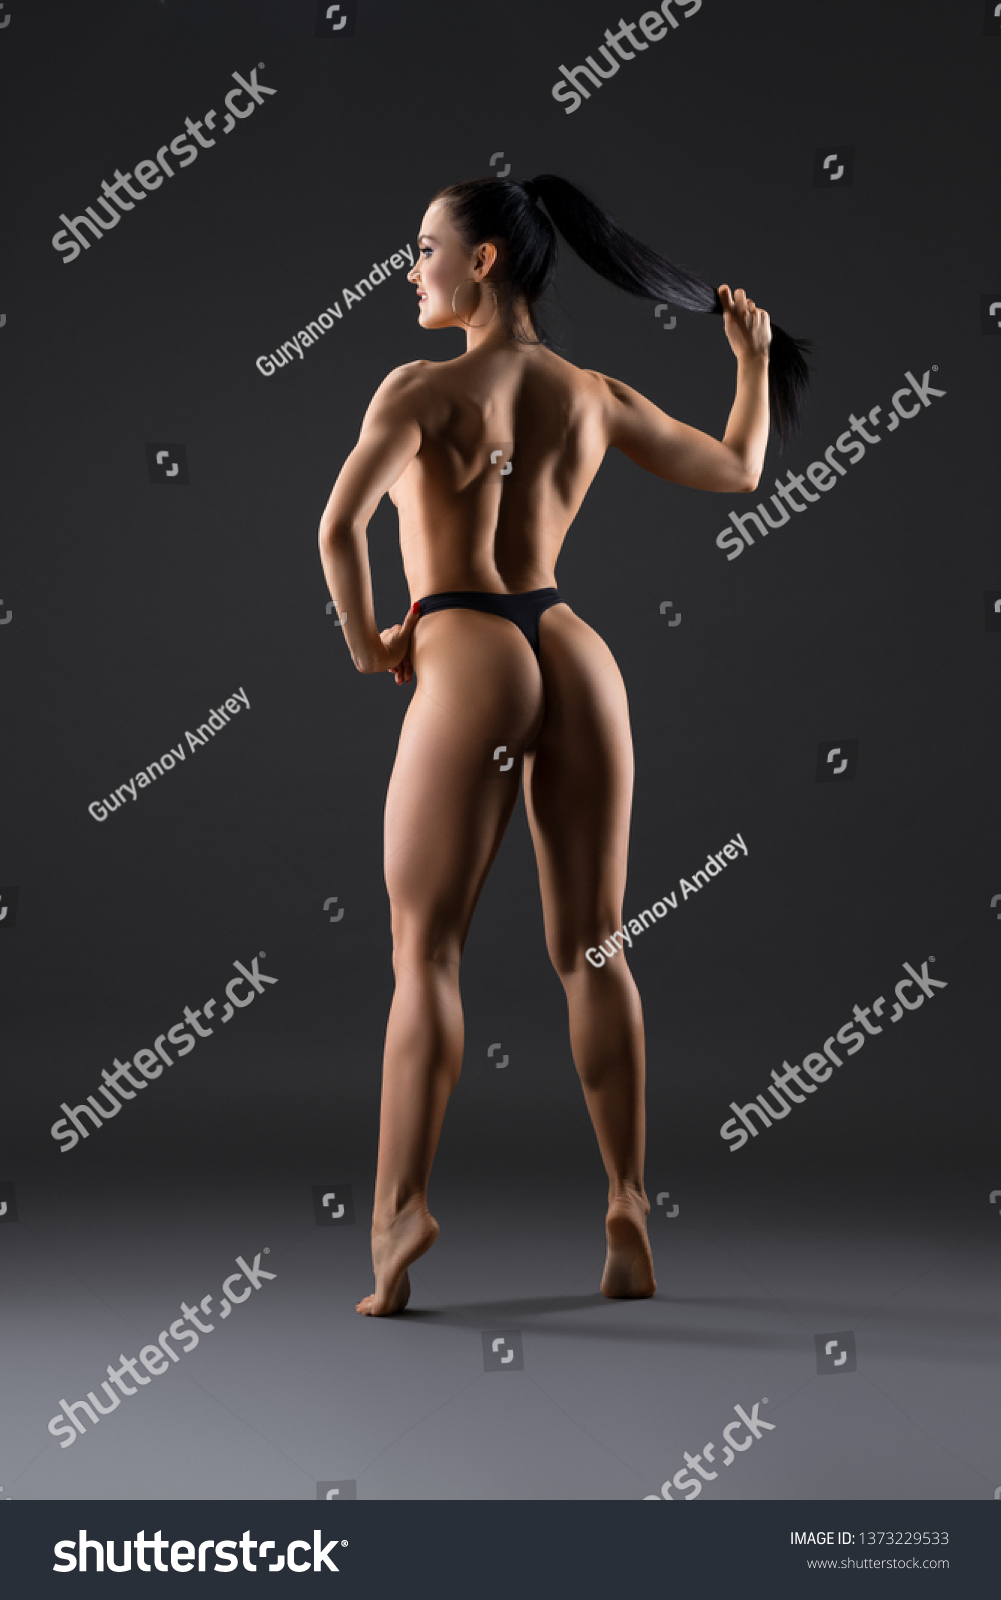 Fitness Topless photo 12